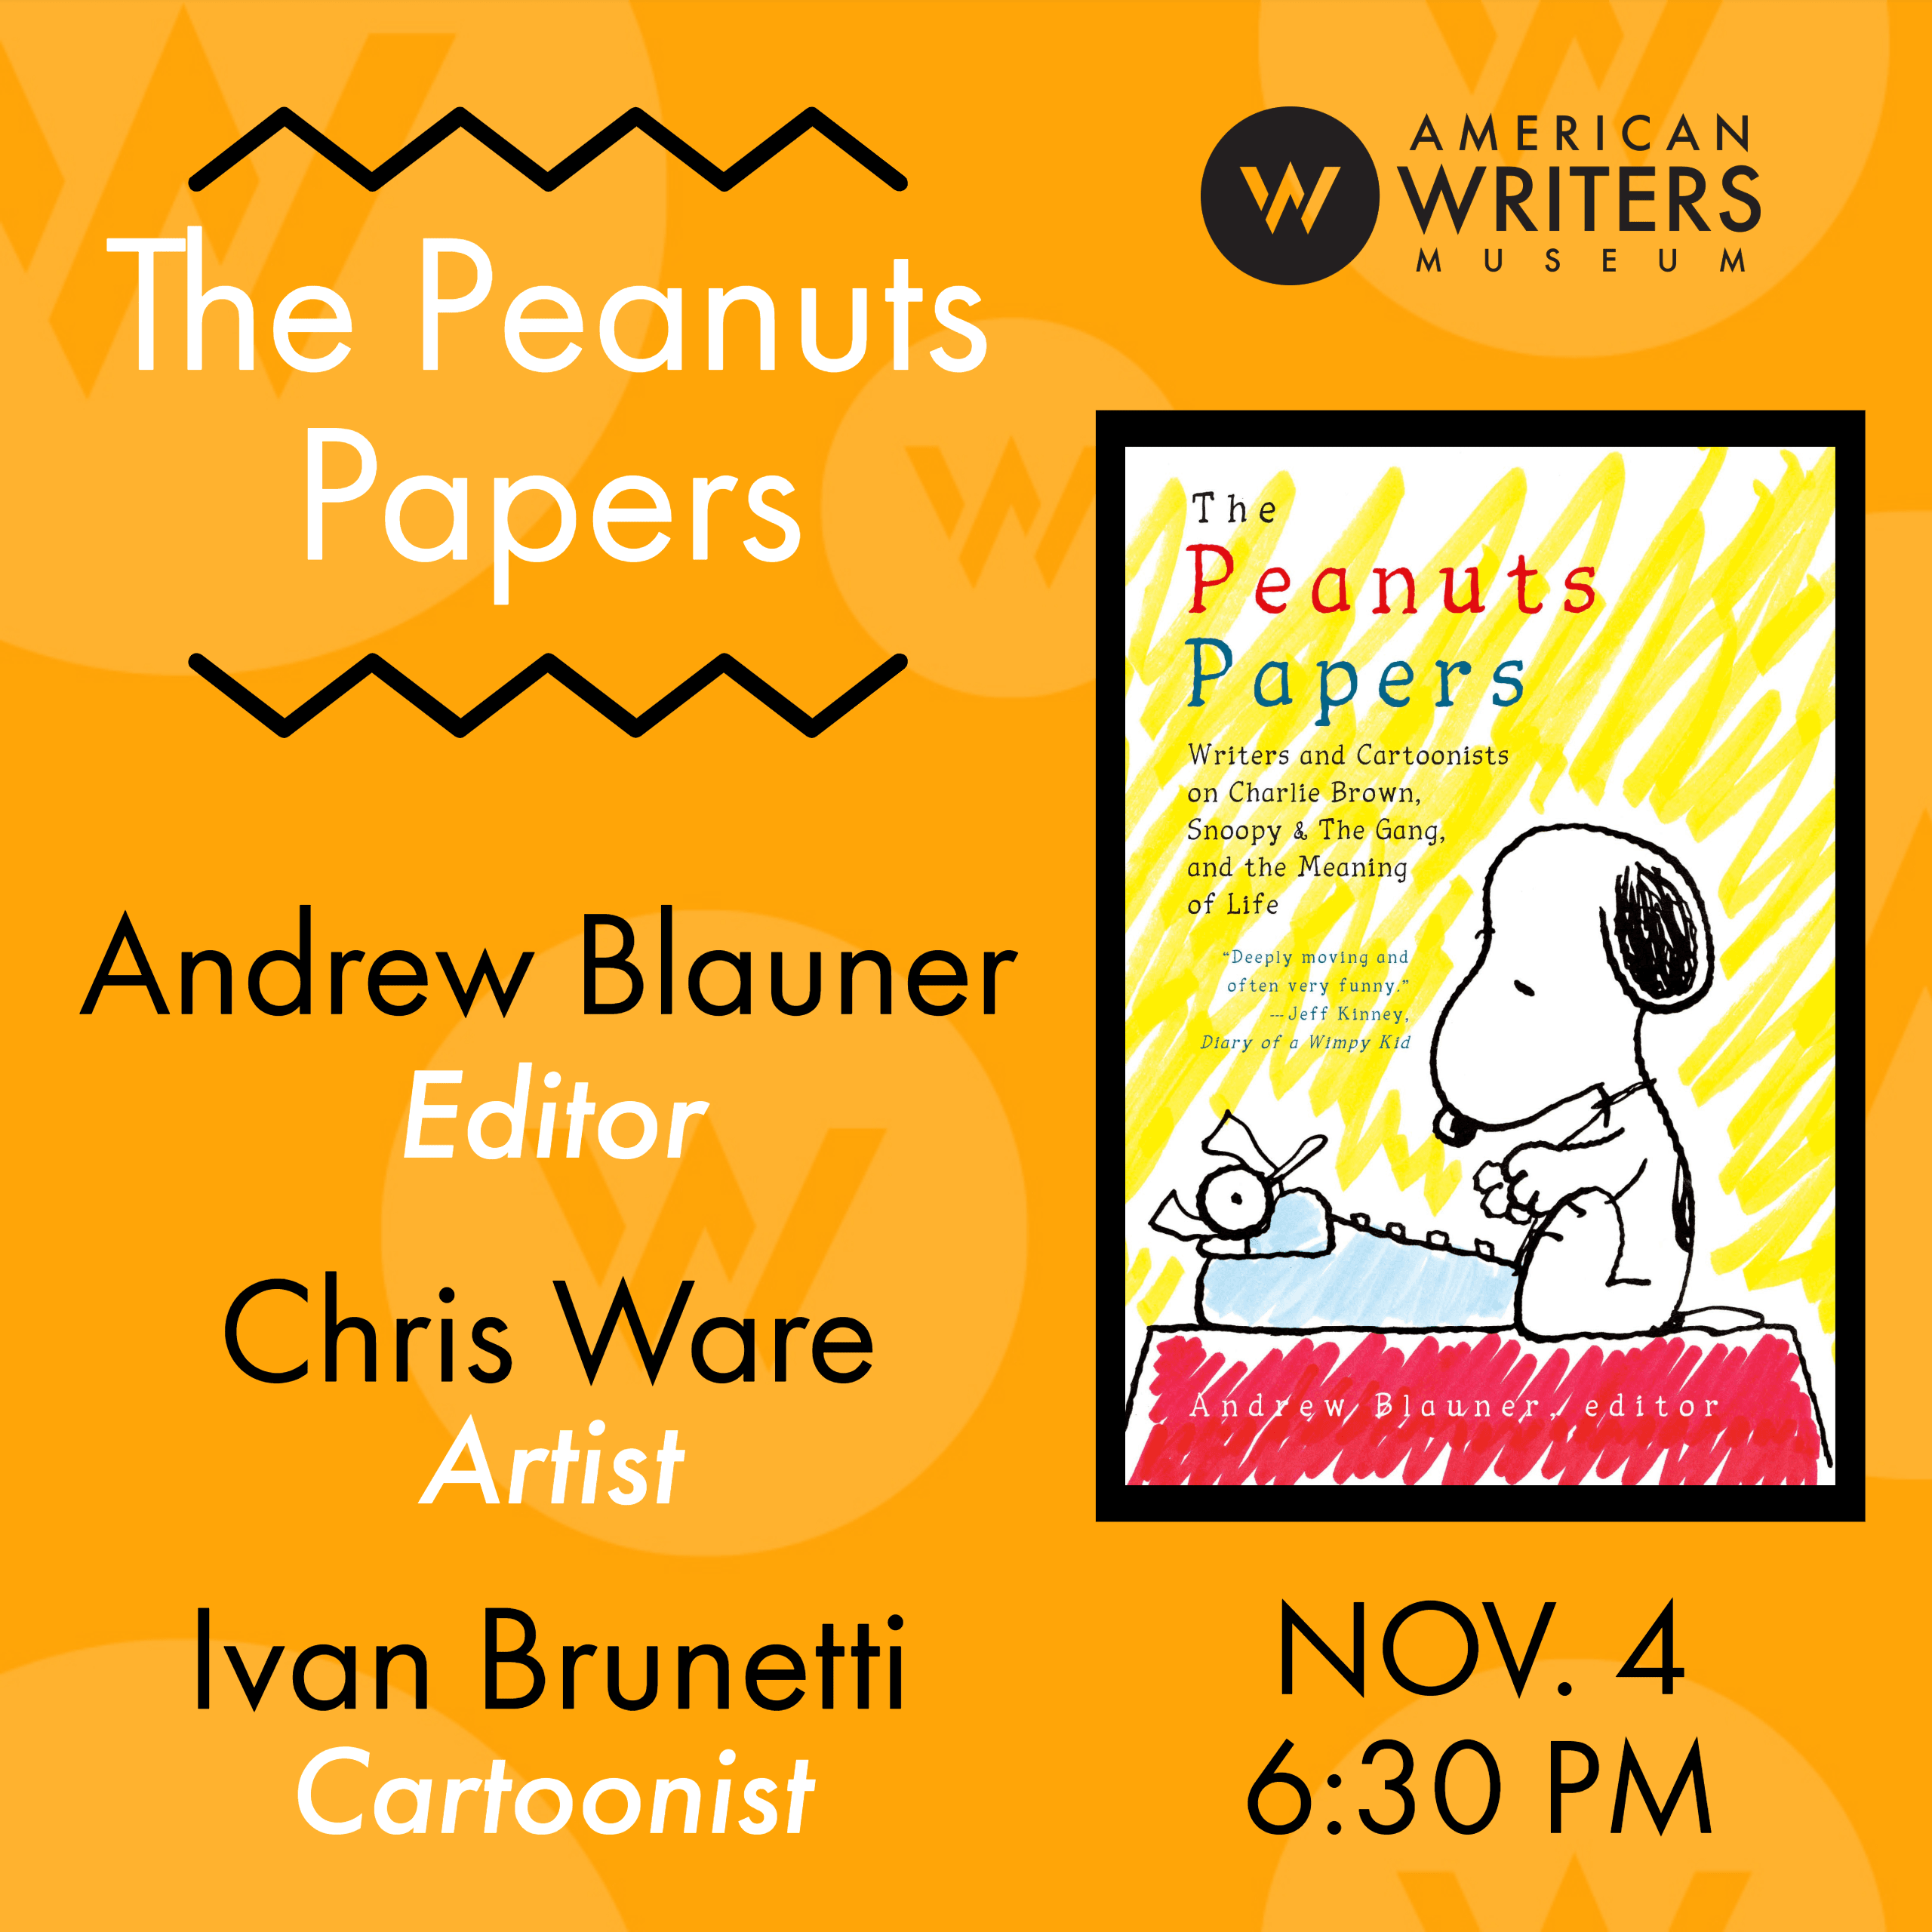 Peanuts Papers at the American Writers Museum on November 4